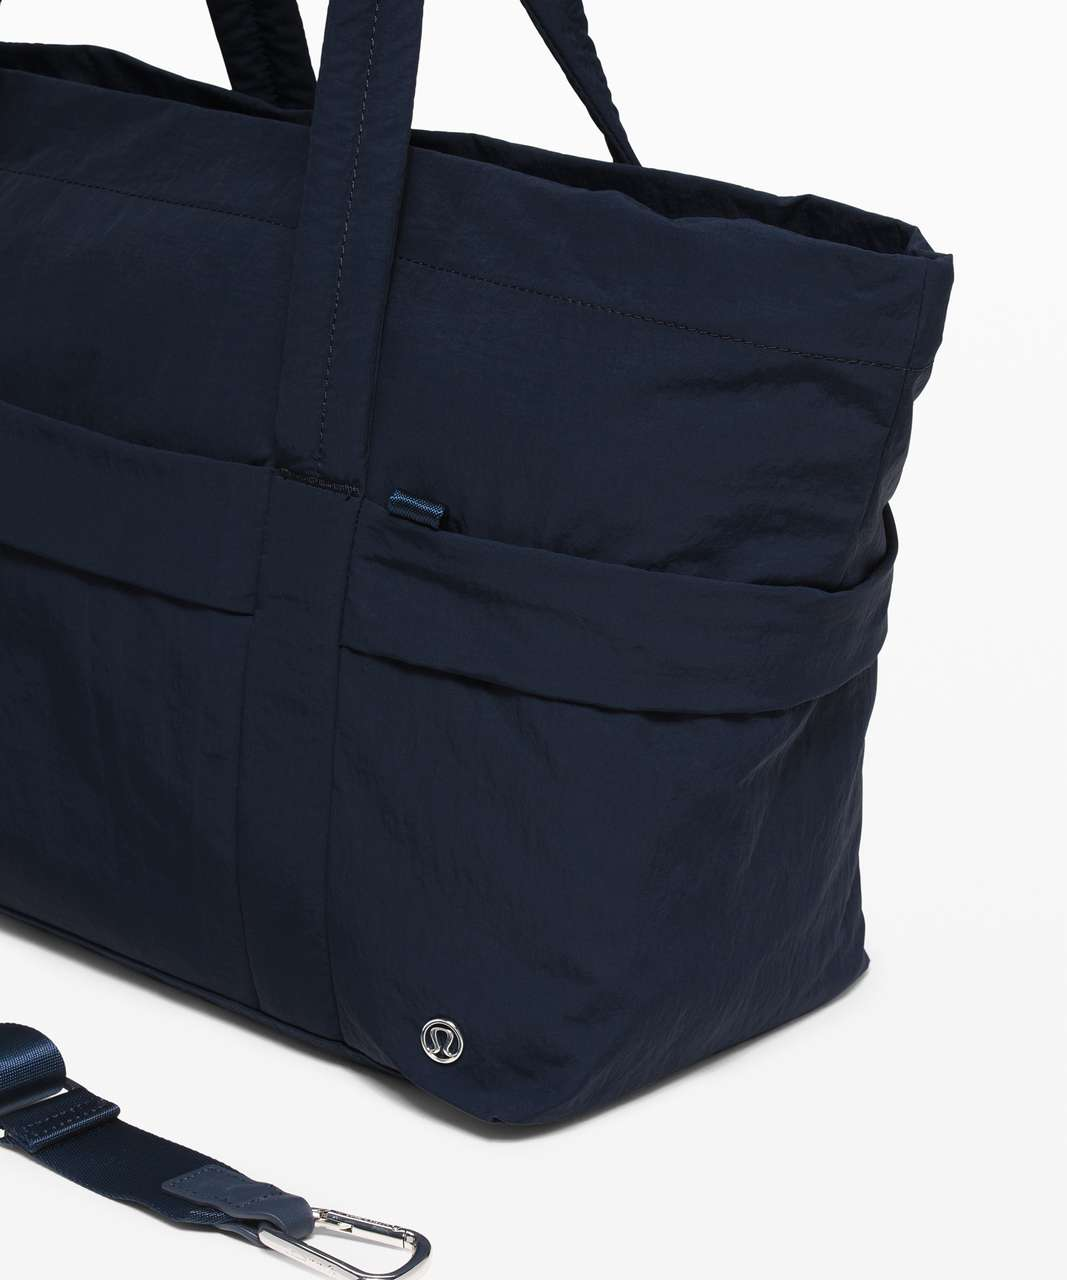 Lululemon On My Level Duffel *Small 22L - True Navy